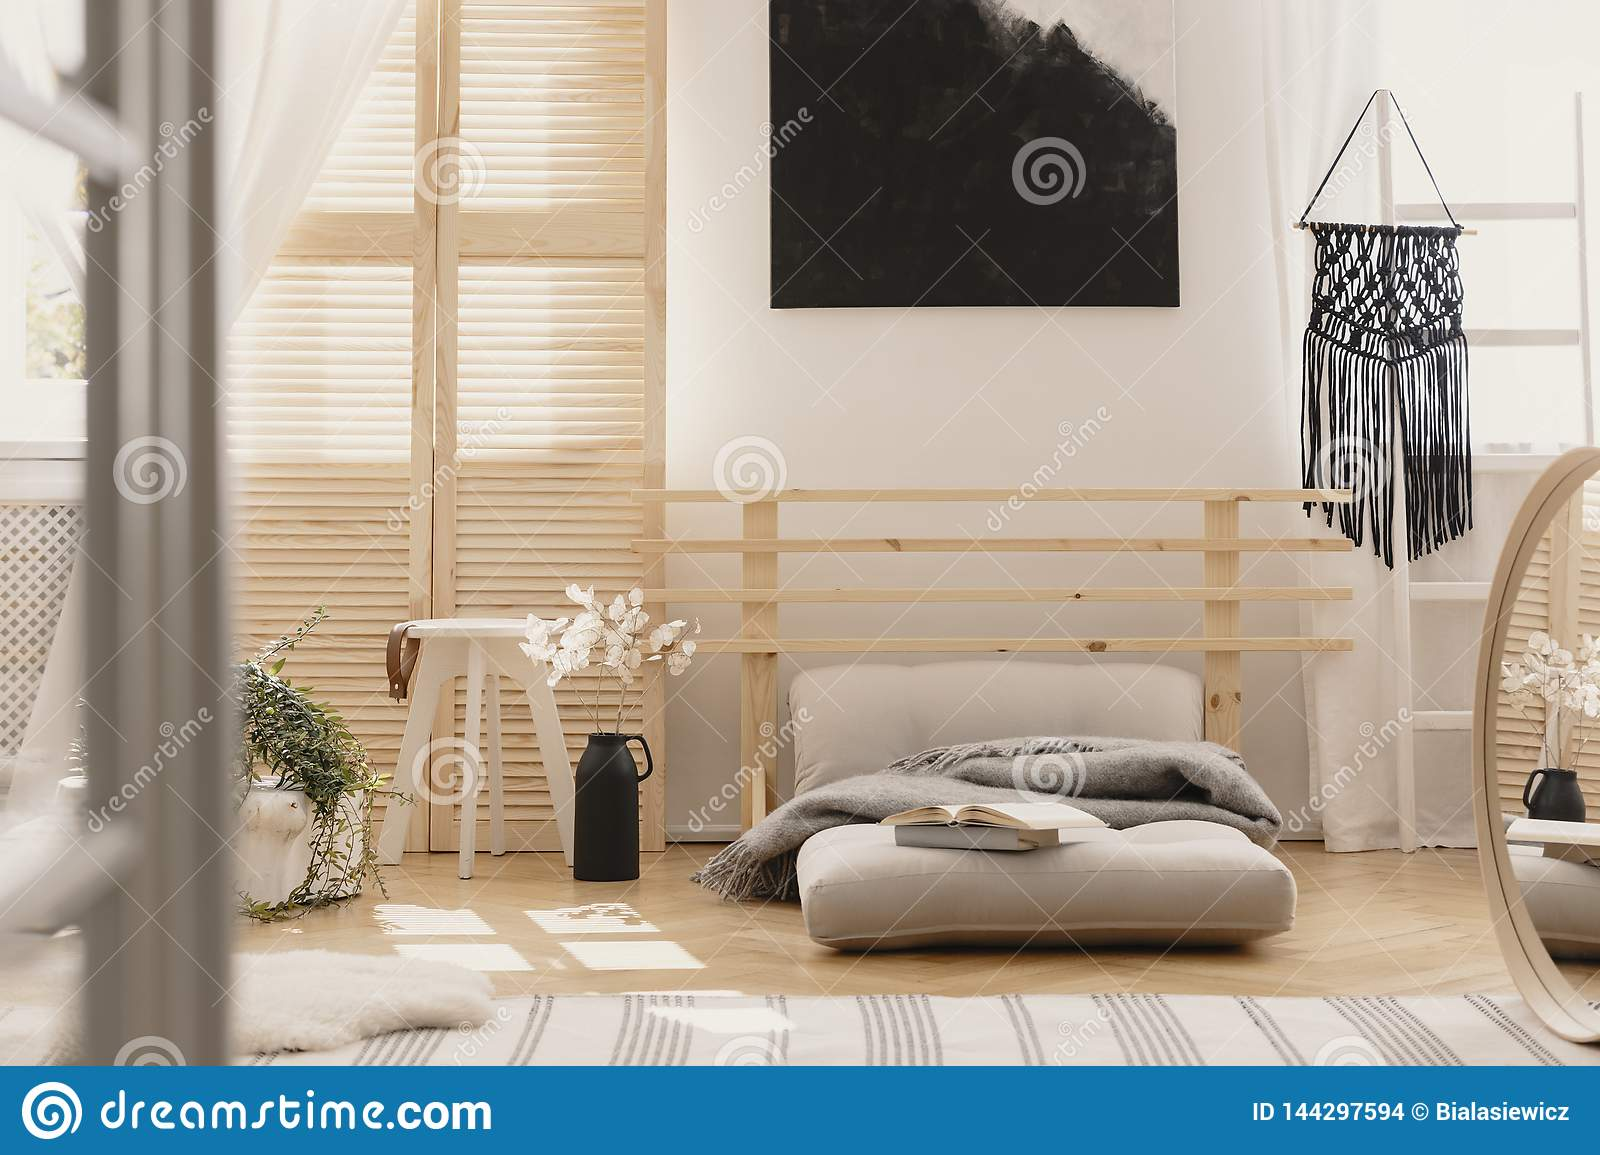 Black Handmade Macrame On White Wooden Ladder In Bright Bedroom Interior With Wooden Furniture And Beige Futon With Grey Warm Stock Photo Image Of Flat Macrame 144297594